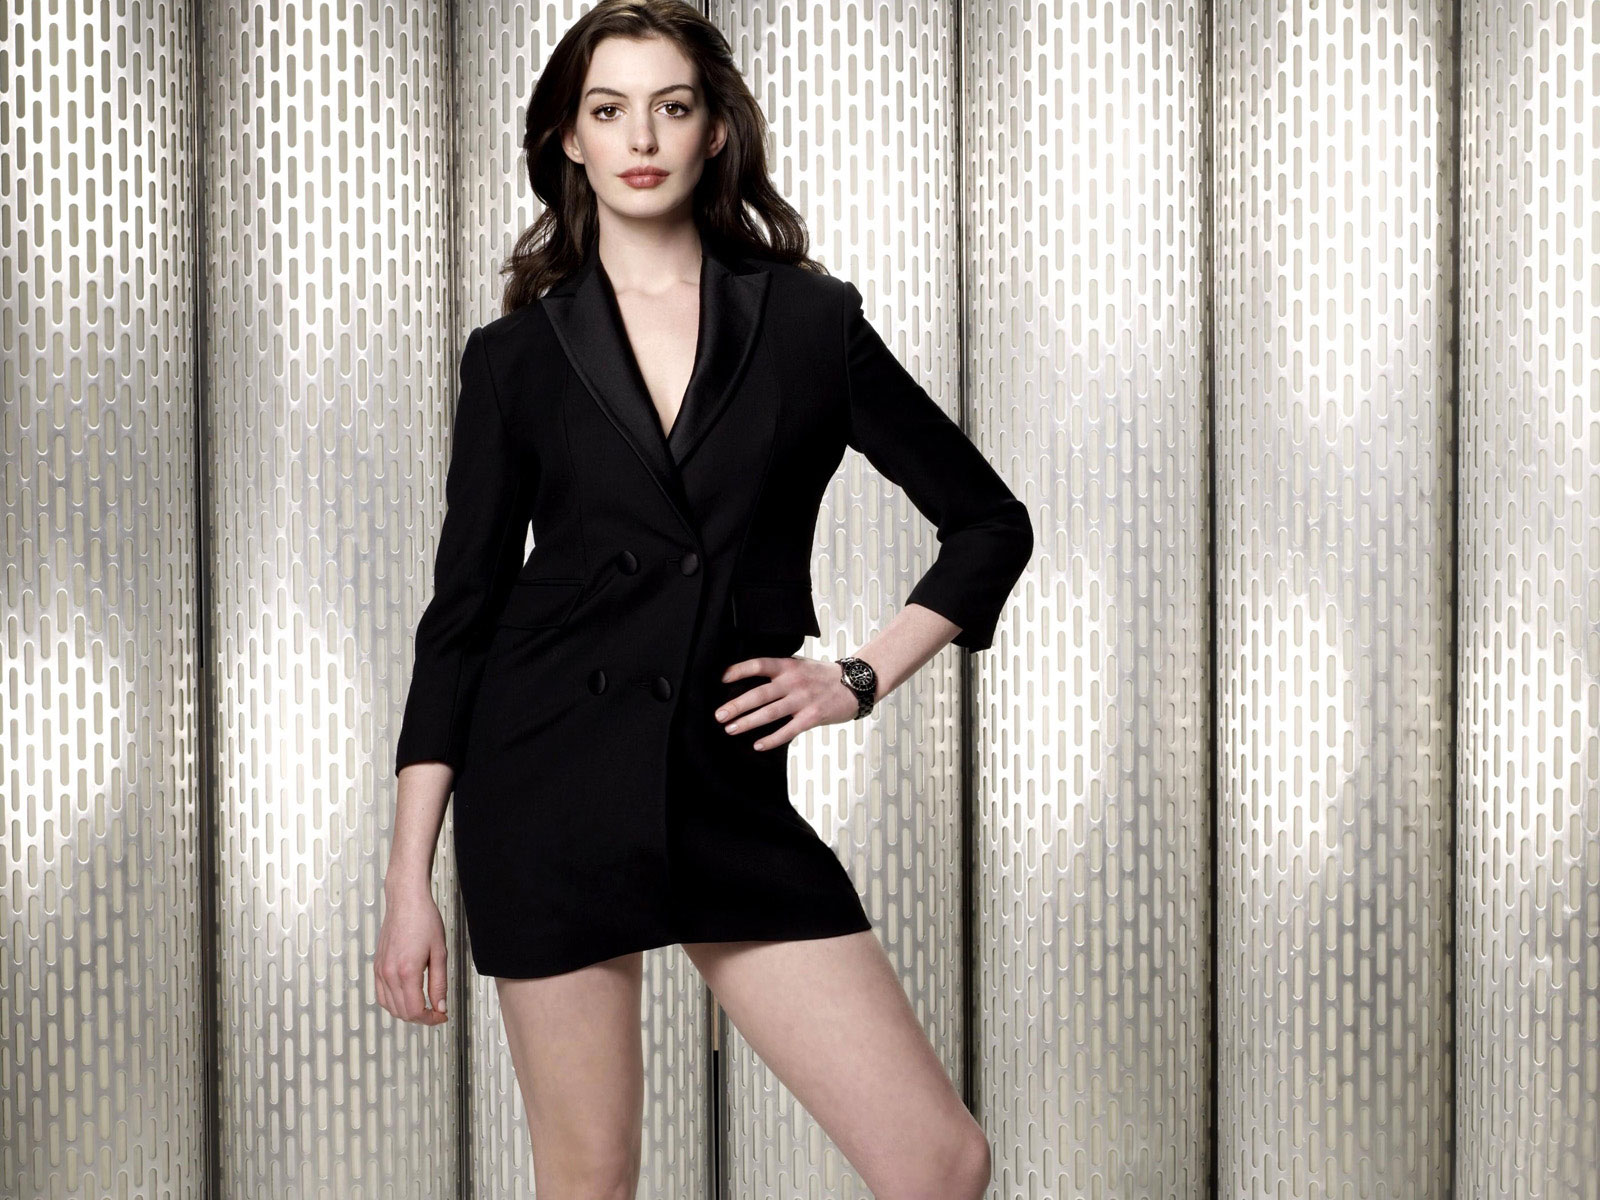 anne hathaway 2015 wallpapers - photo #27